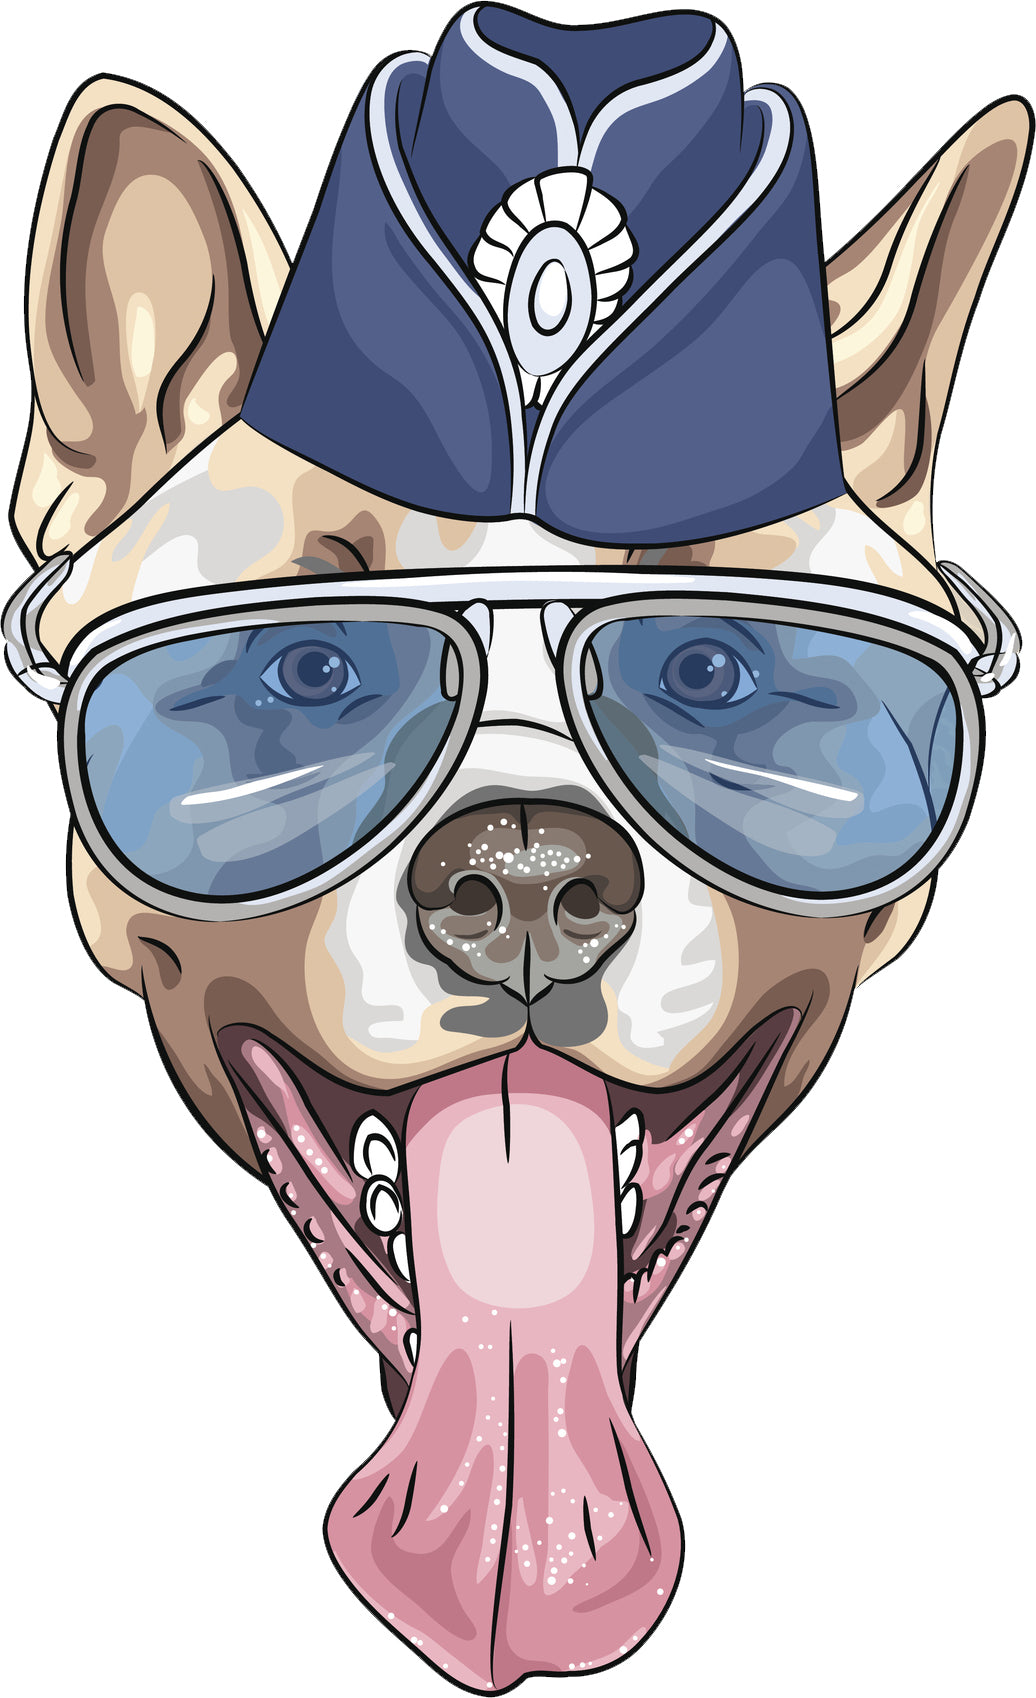 Cute Watercolor Yawning Military Pitbull Puppy Dog Vinyl Decal Sticker